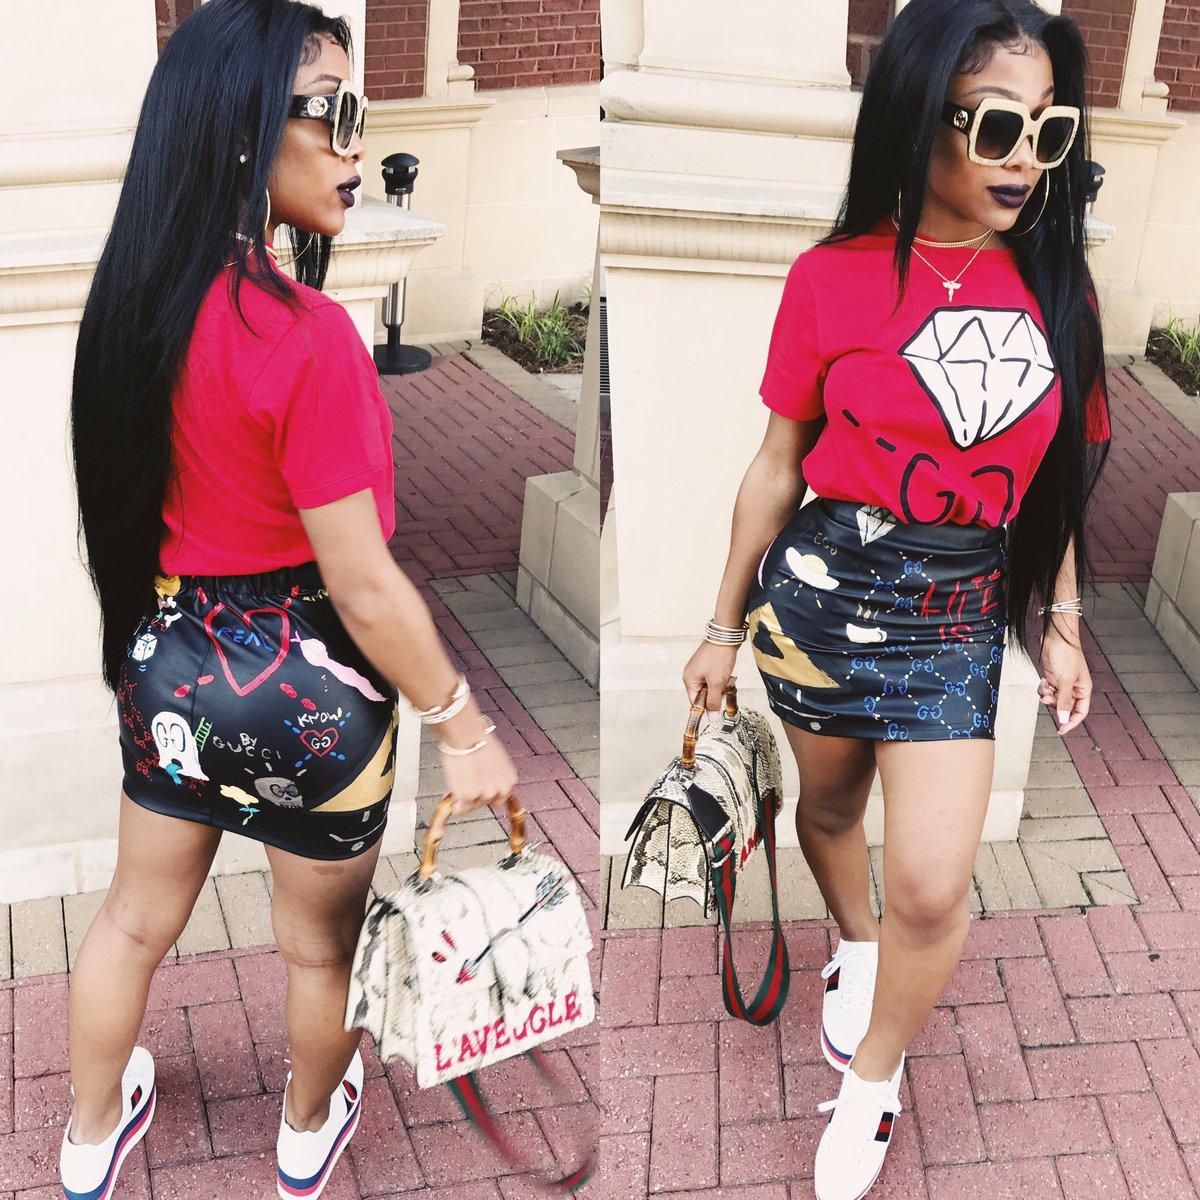 Amourjayda On Twitter Quot Life S Gucci🤷🏽 ♀️ Shirt Shoes Bag